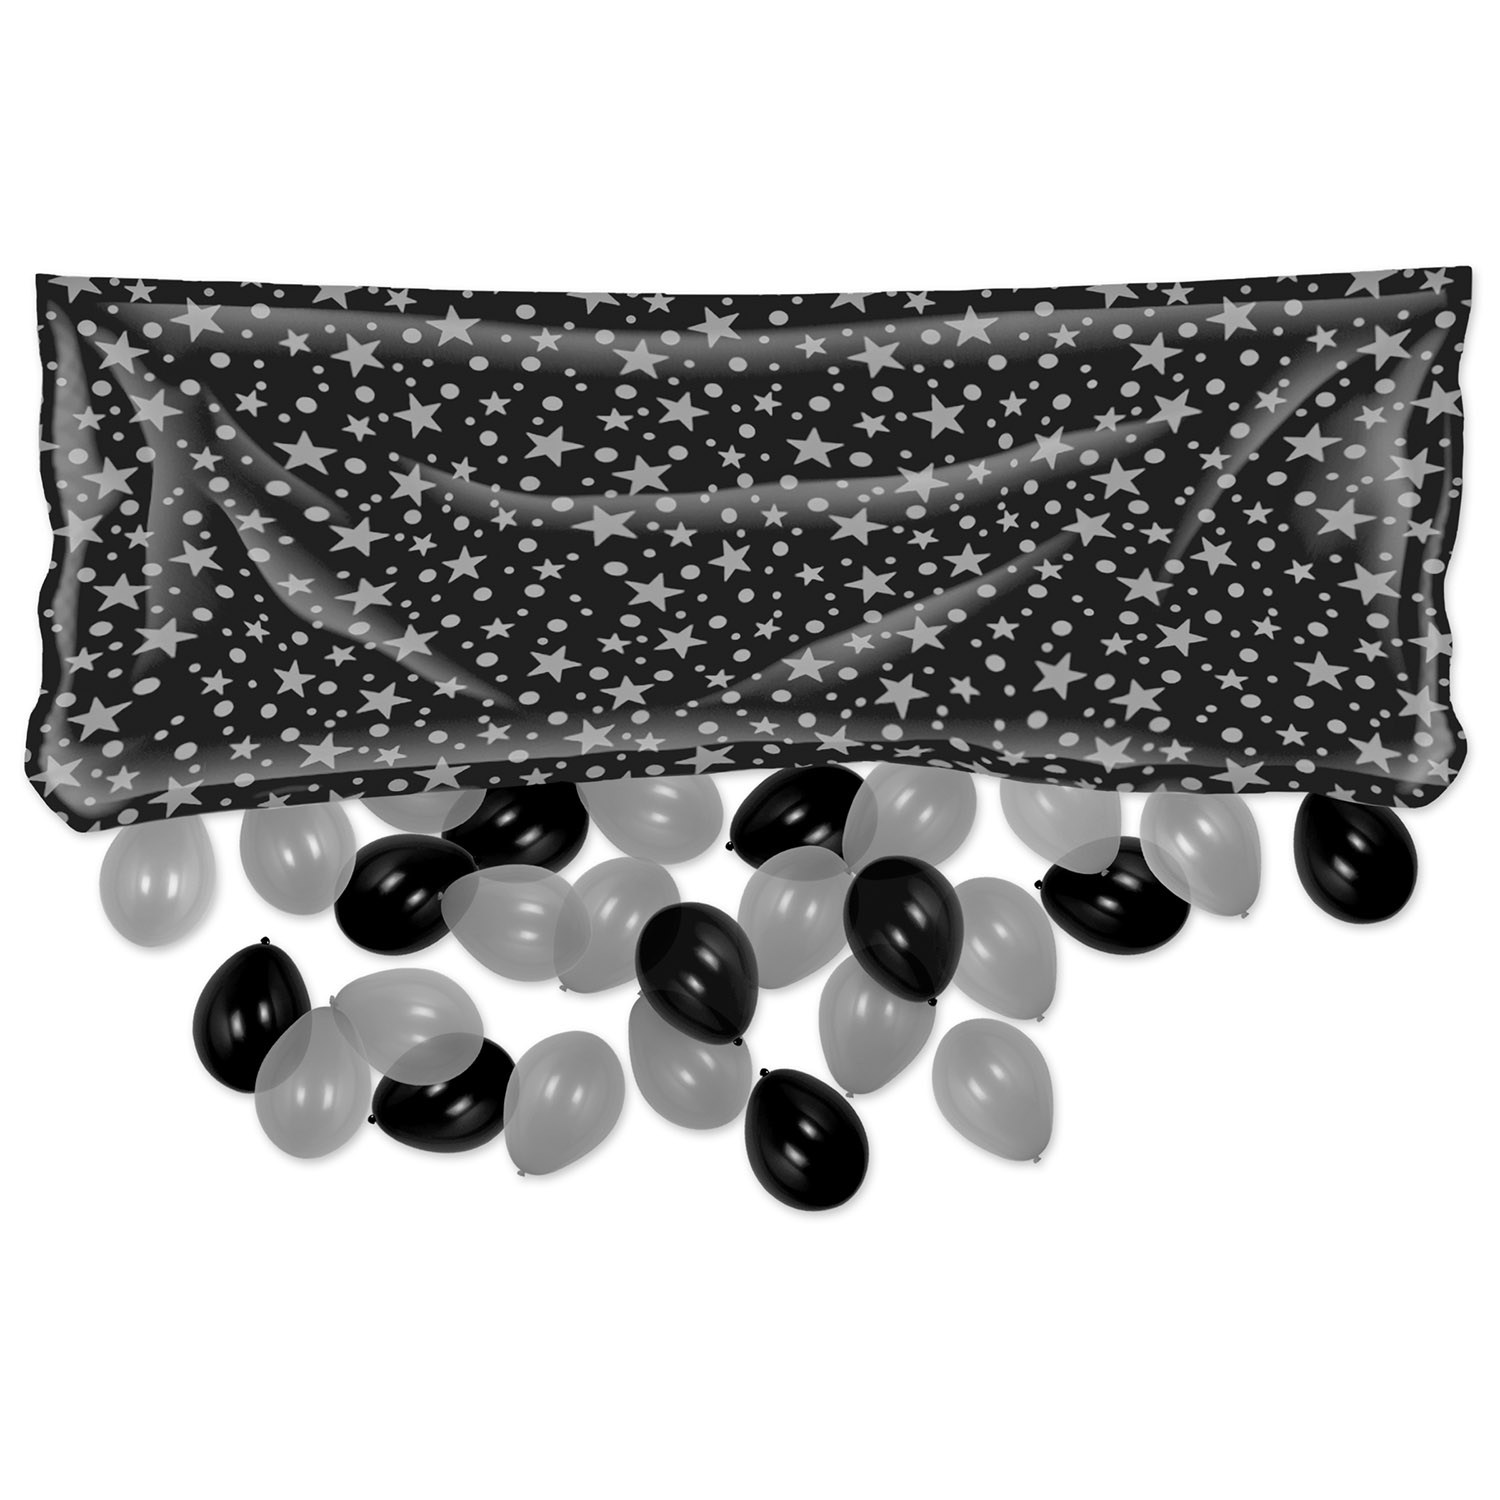 Plastic Balloon Bag w/Balloons (Pack of 1) Plastic Balloon Bag with Balloons, decoration, balloons, new years eve, black, silver, wholesale, inexpensive, bulk